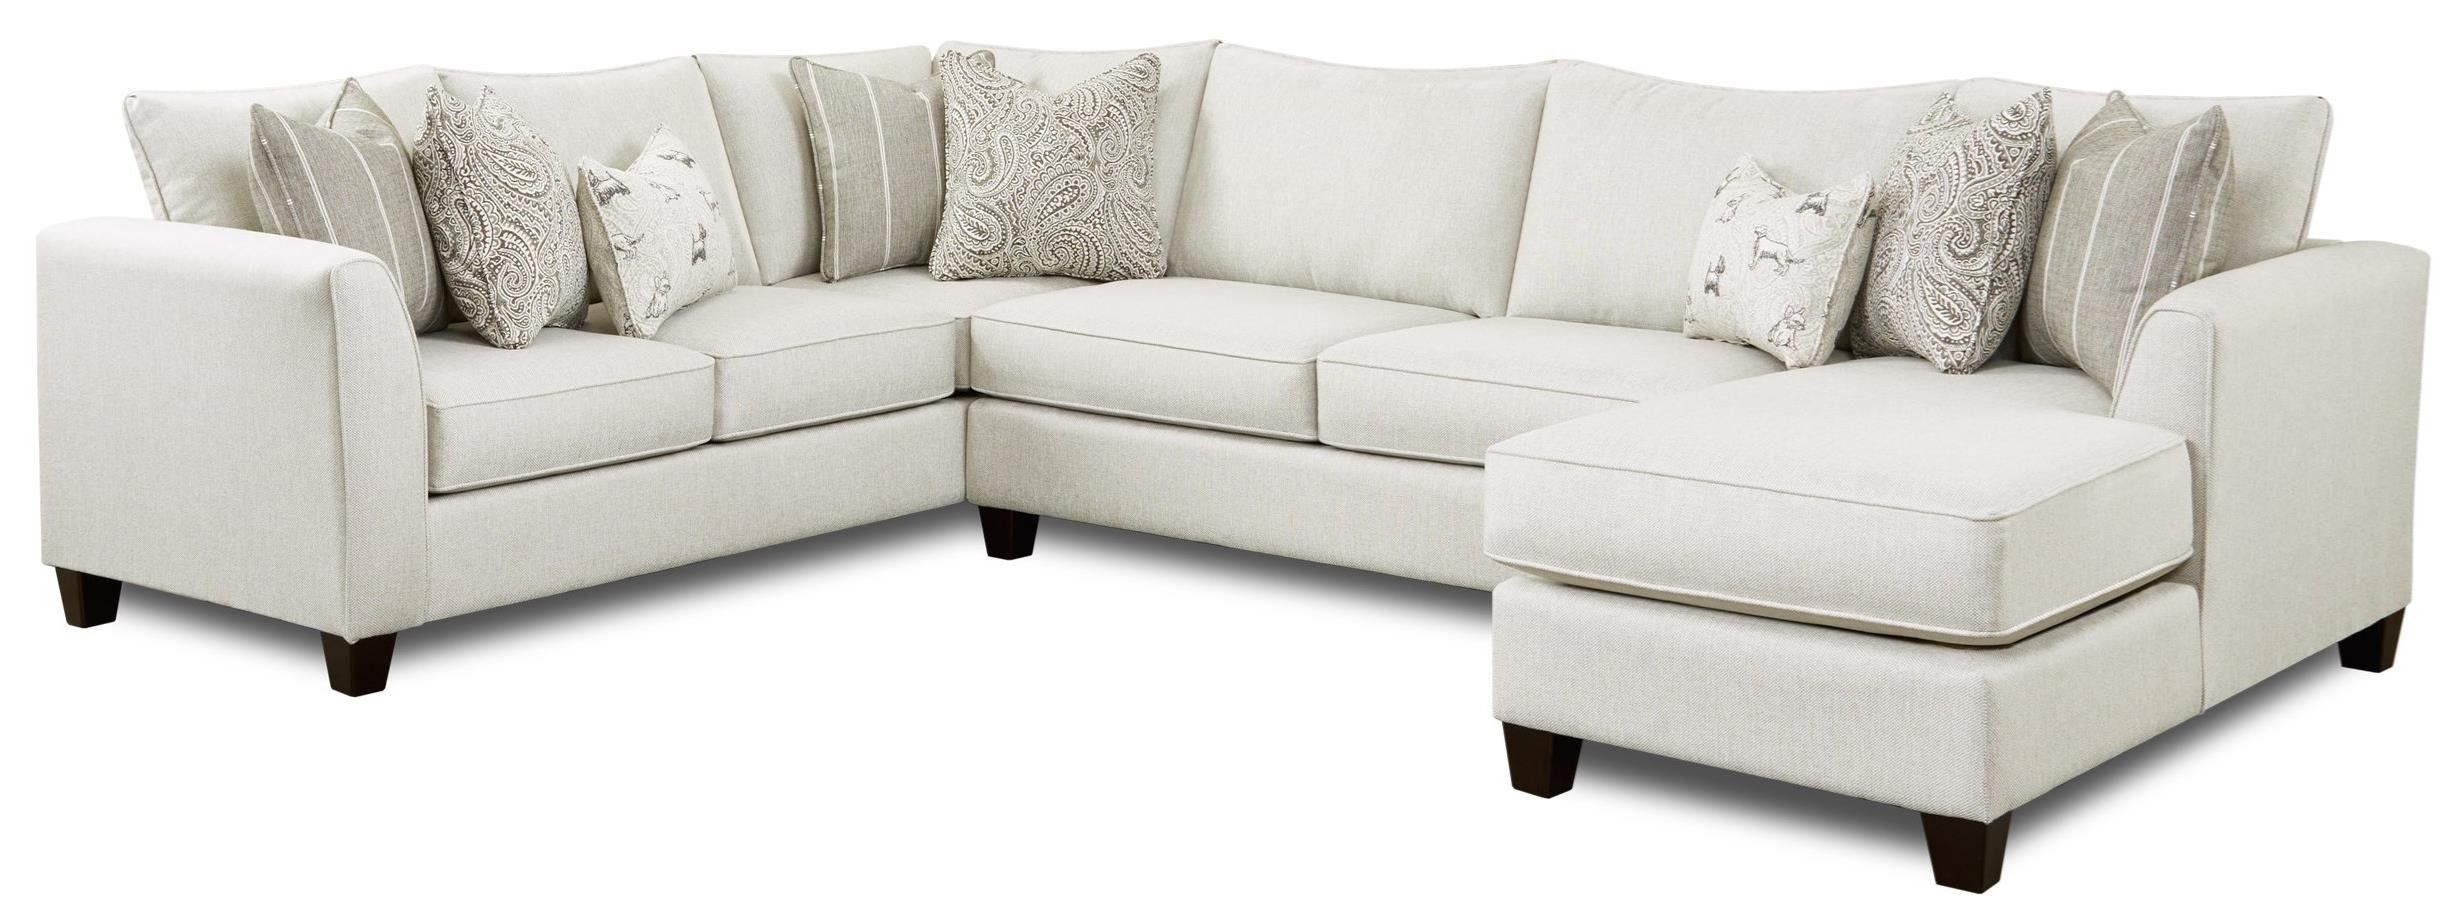 28 HOMECOMING STONE (REVOLUTION) 3-Piece Sectional with Chaise by Fusion Furniture at Darvin Furniture